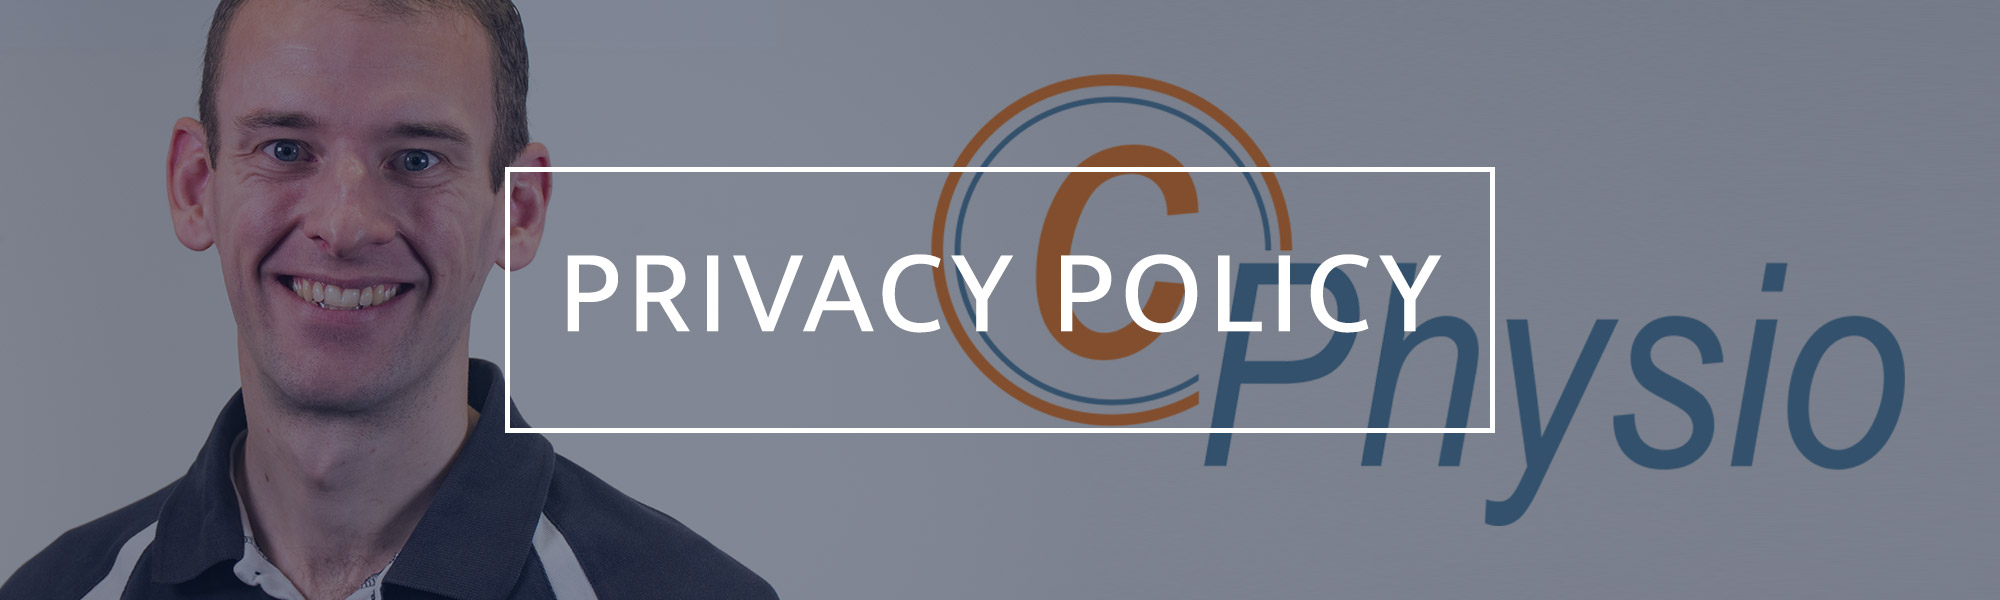 Privacy Policy Header 2